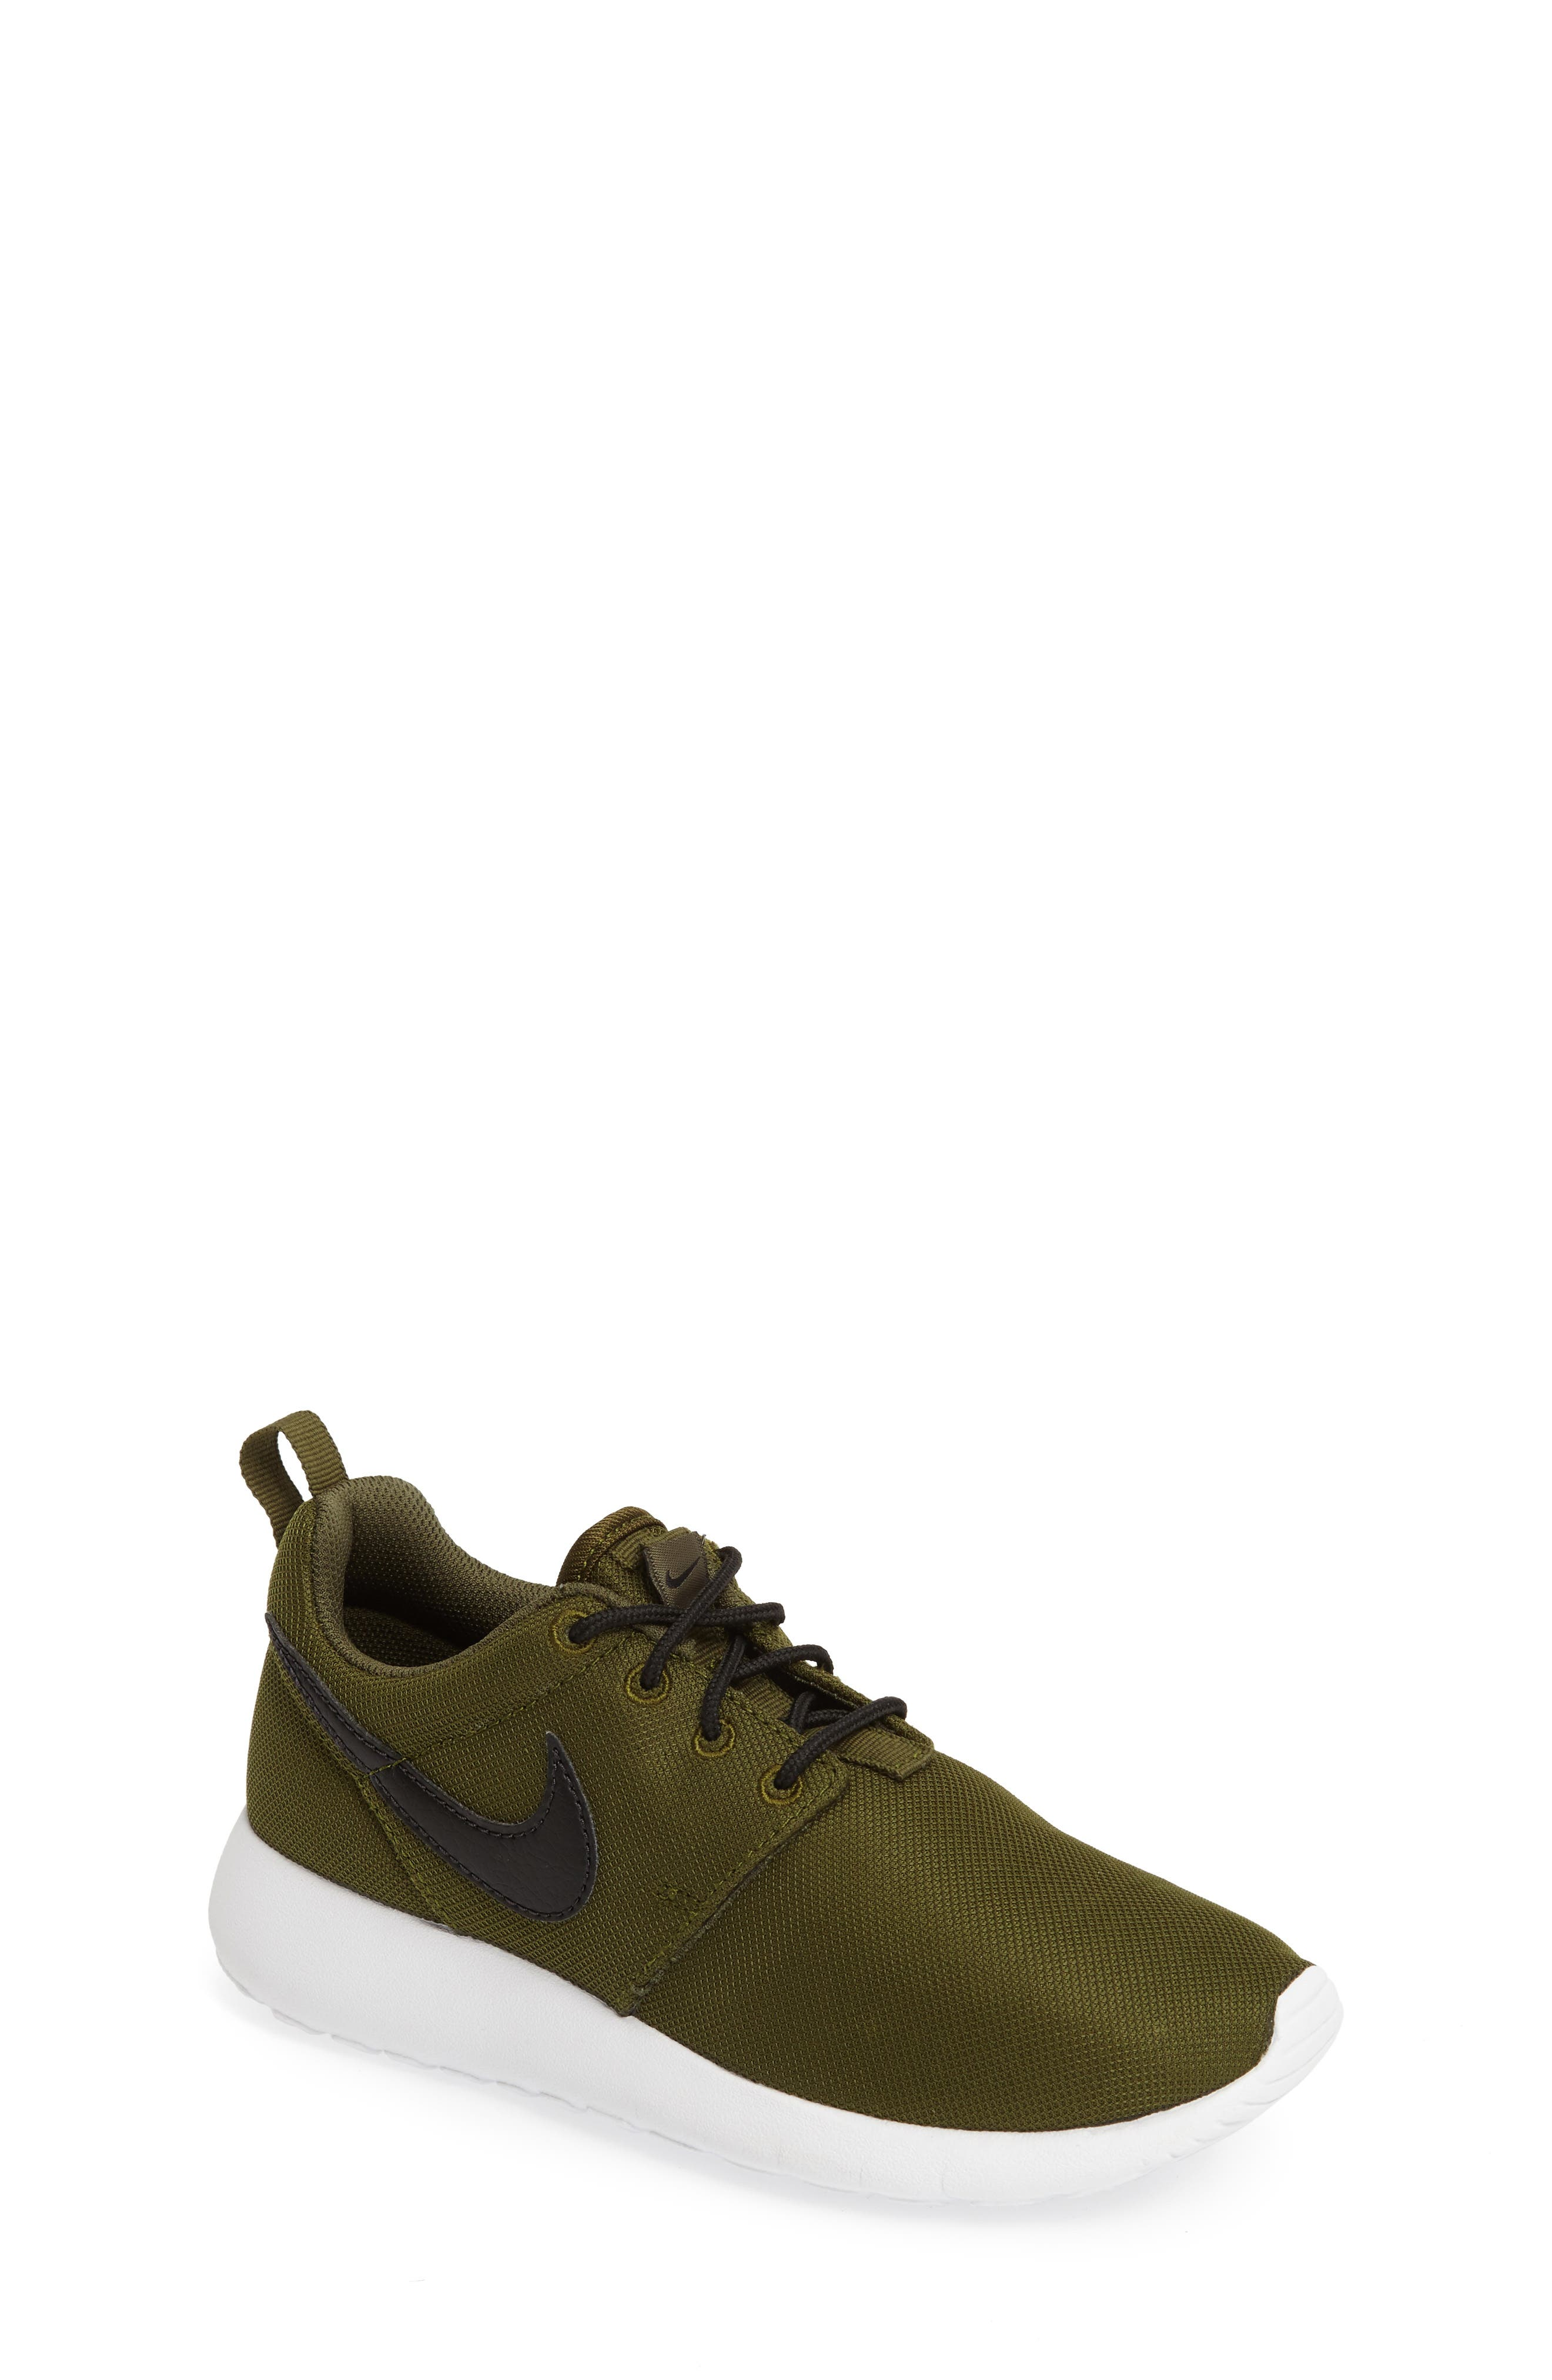 'Roshe Run' Sneaker,                             Main thumbnail 35, color,